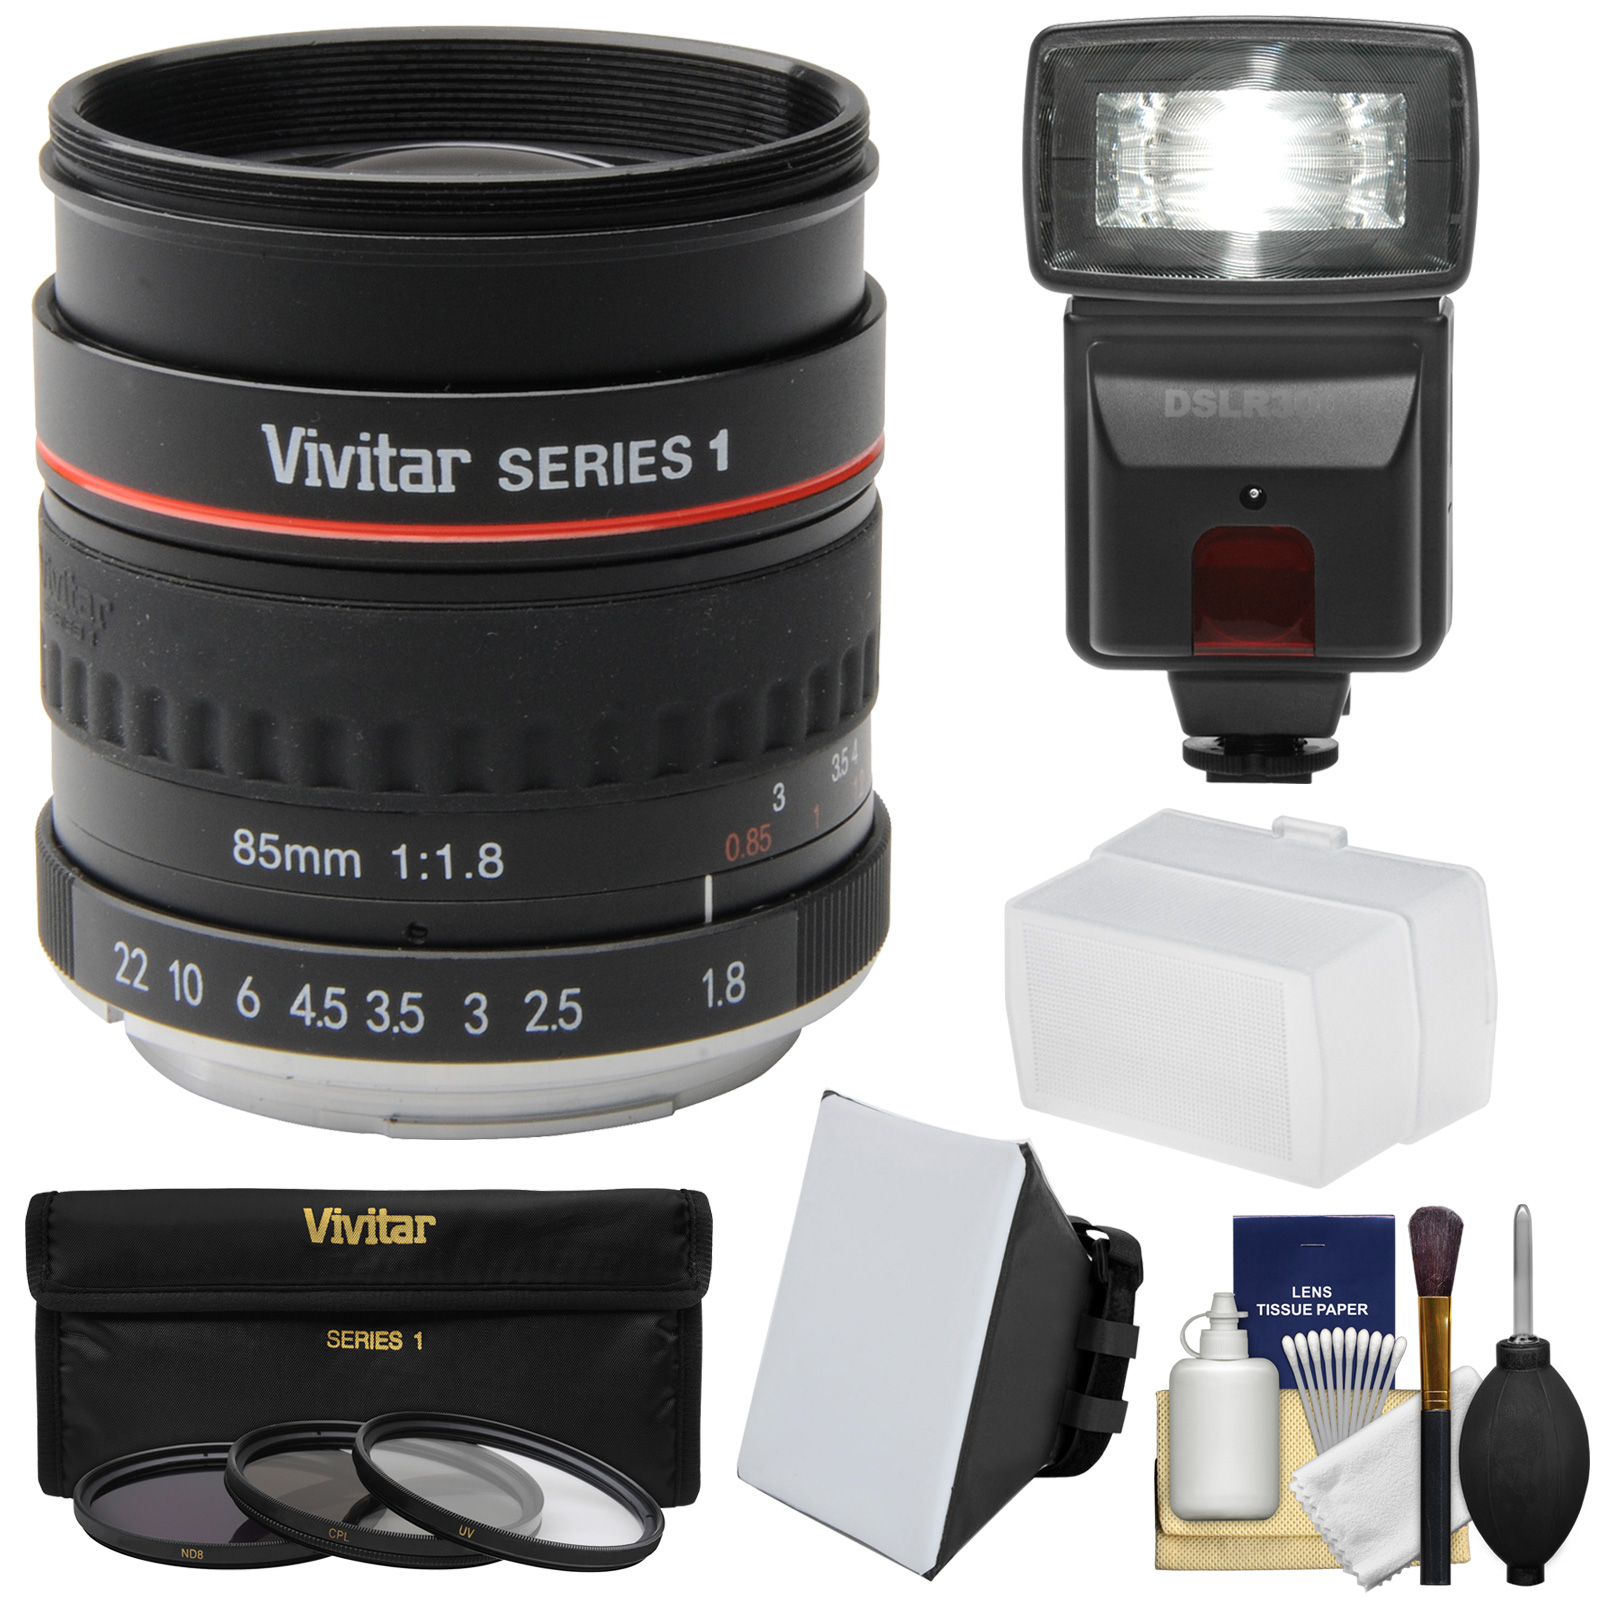 Vivitar 85mm f/1.8 Portrait Lens for Canon EOS Cameras with 3 UV/CPL/ND8 Filters + Flash + Soft Box & Diffuser + Kit